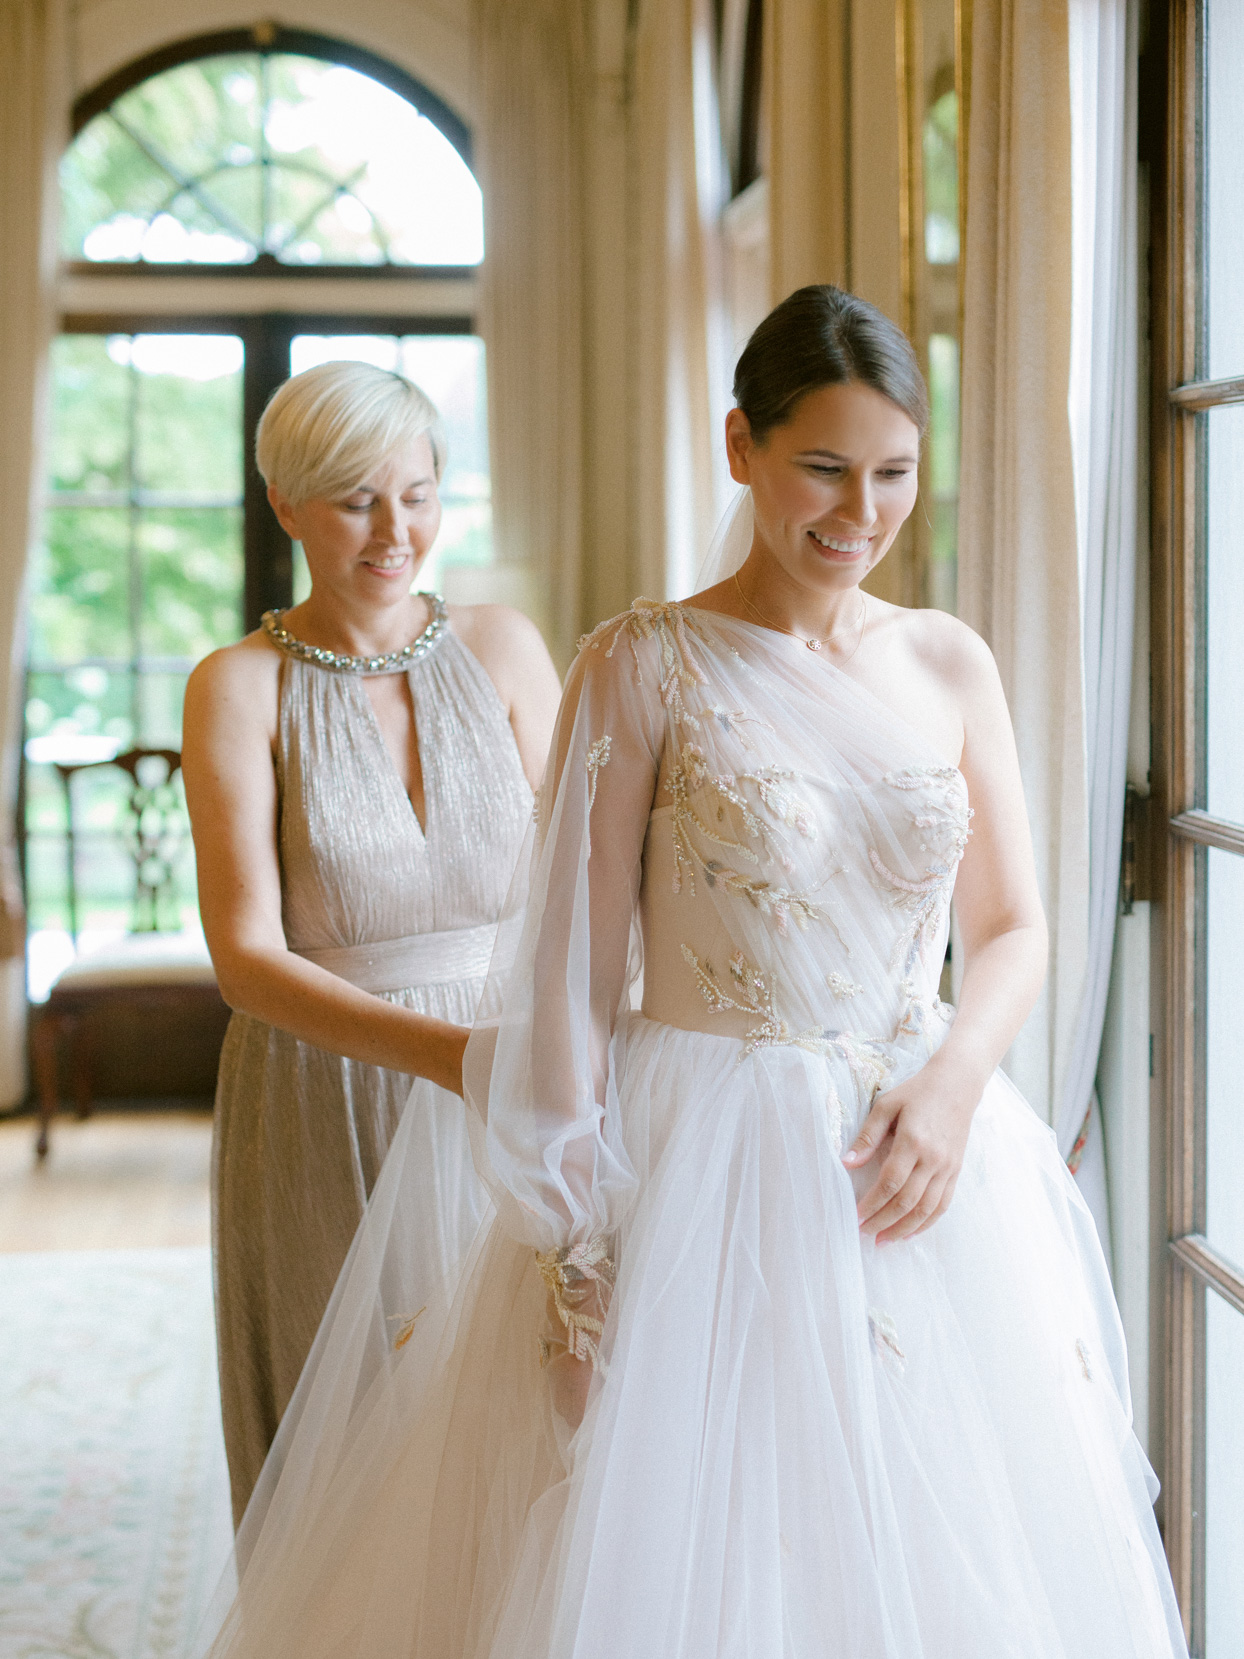 mother helping bride get ready in front of large windows